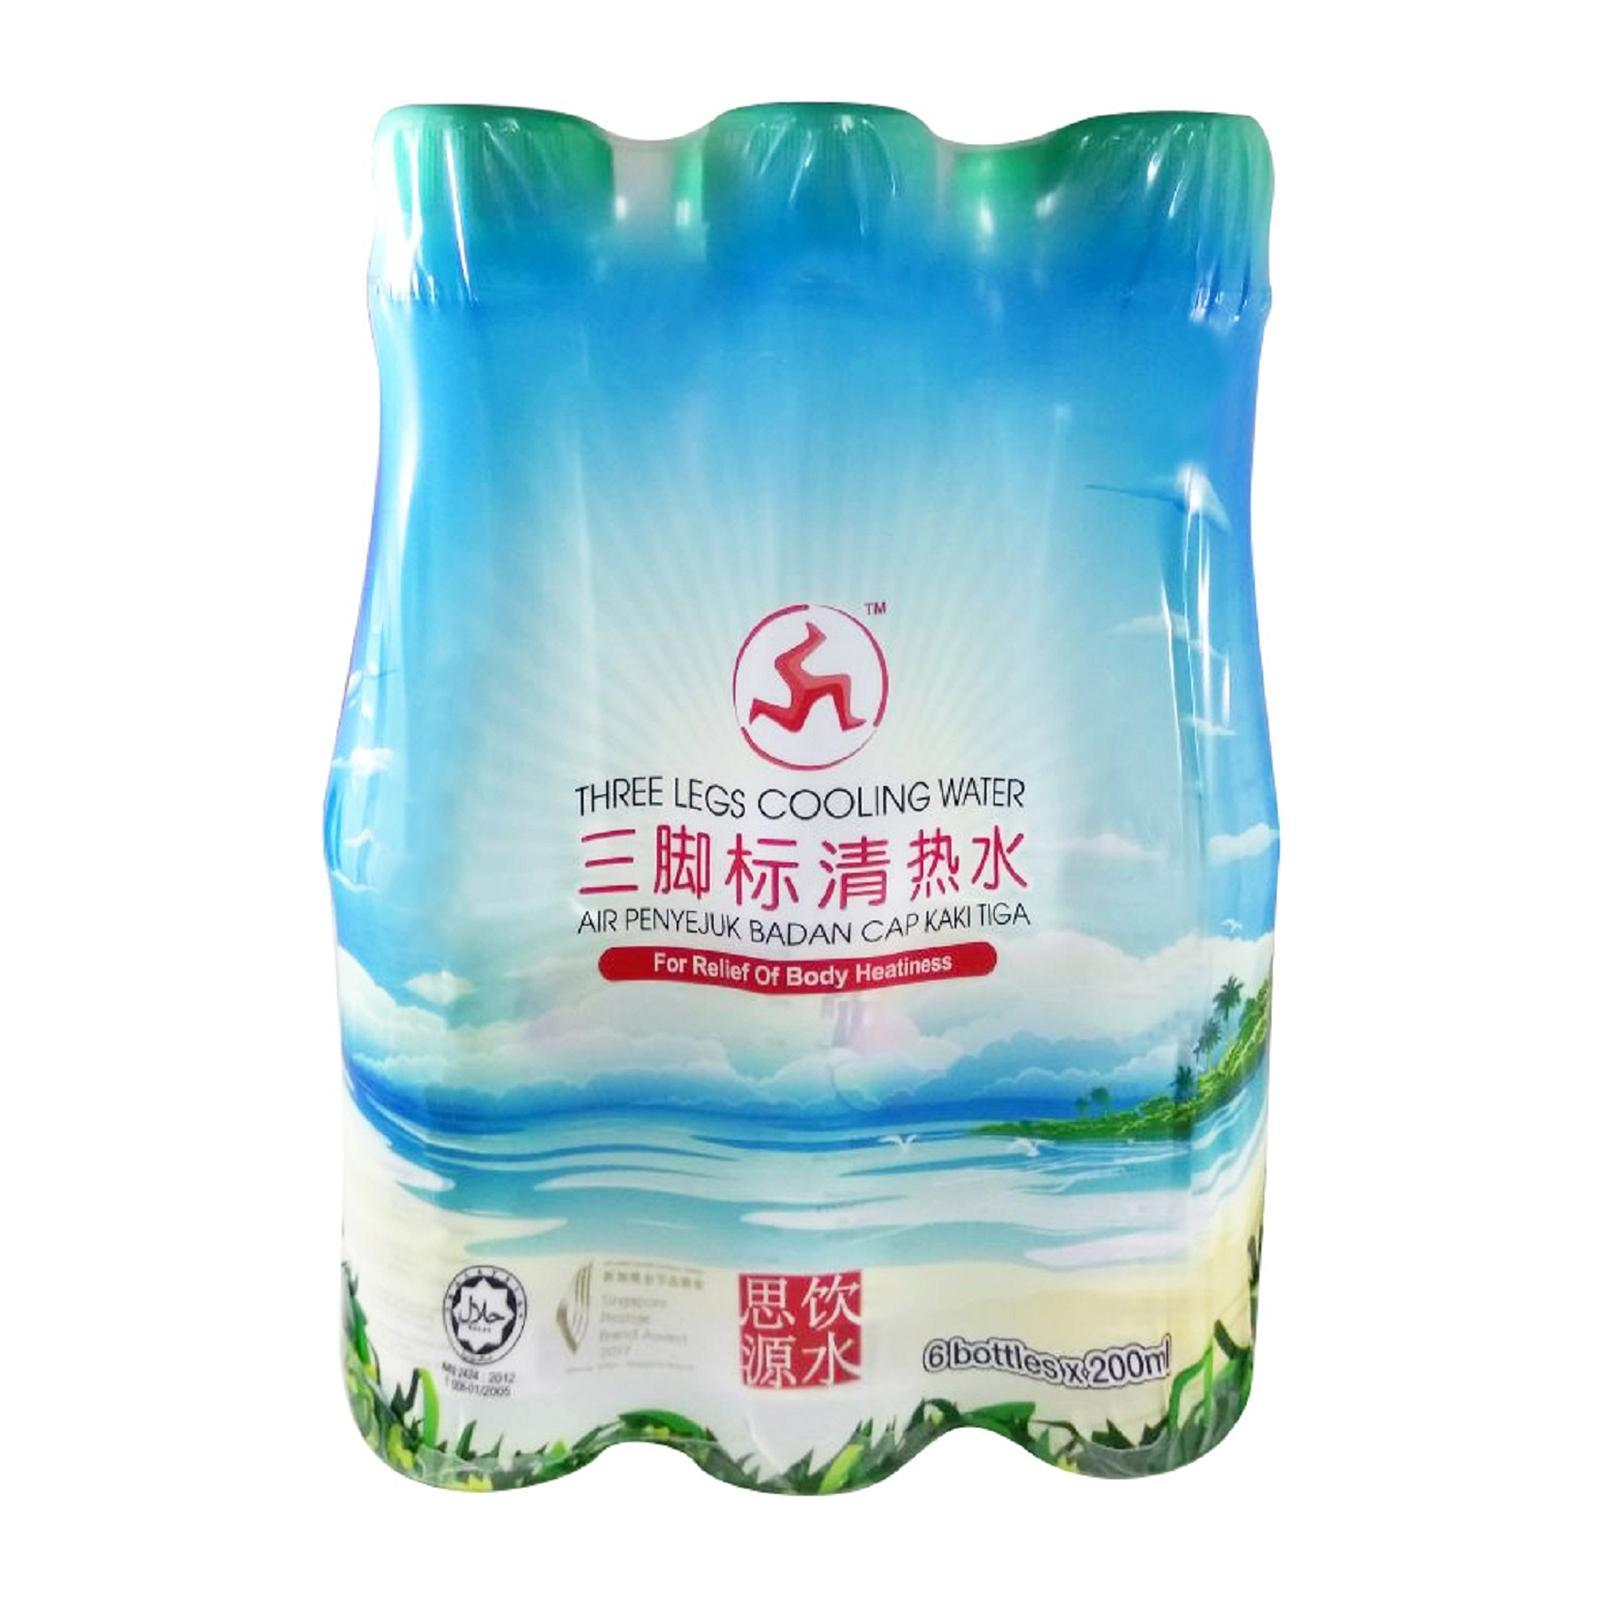 Three Legs Cooling Water - 6s Pack